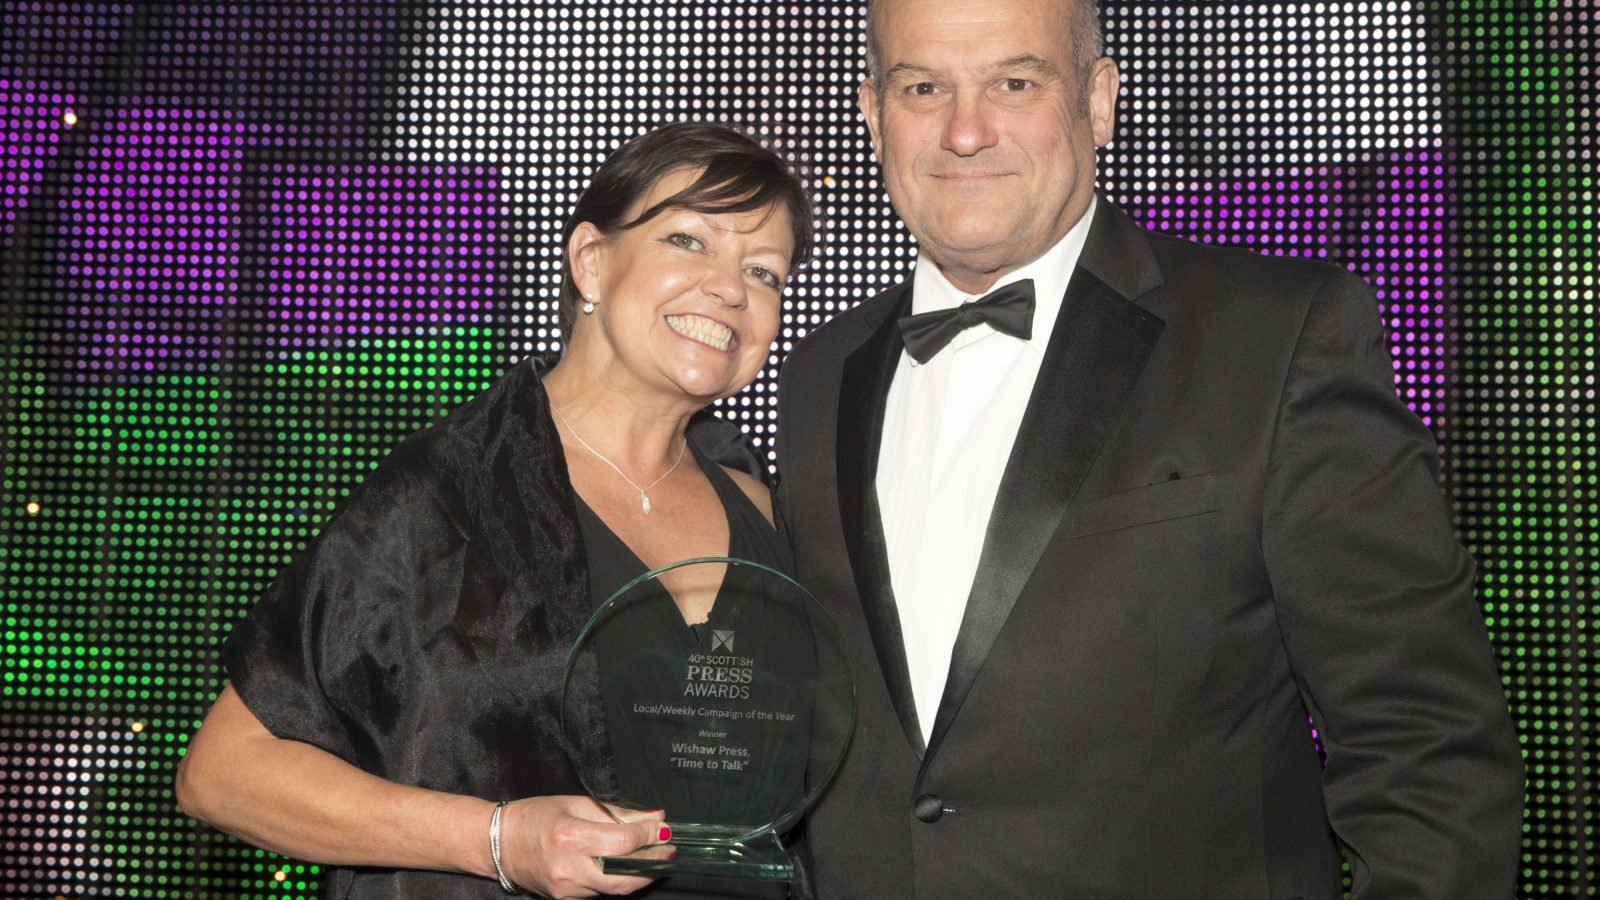 """Local/Weekly Campaign of the Year Winner Wishaw Press, """"Time to Talk"""""""